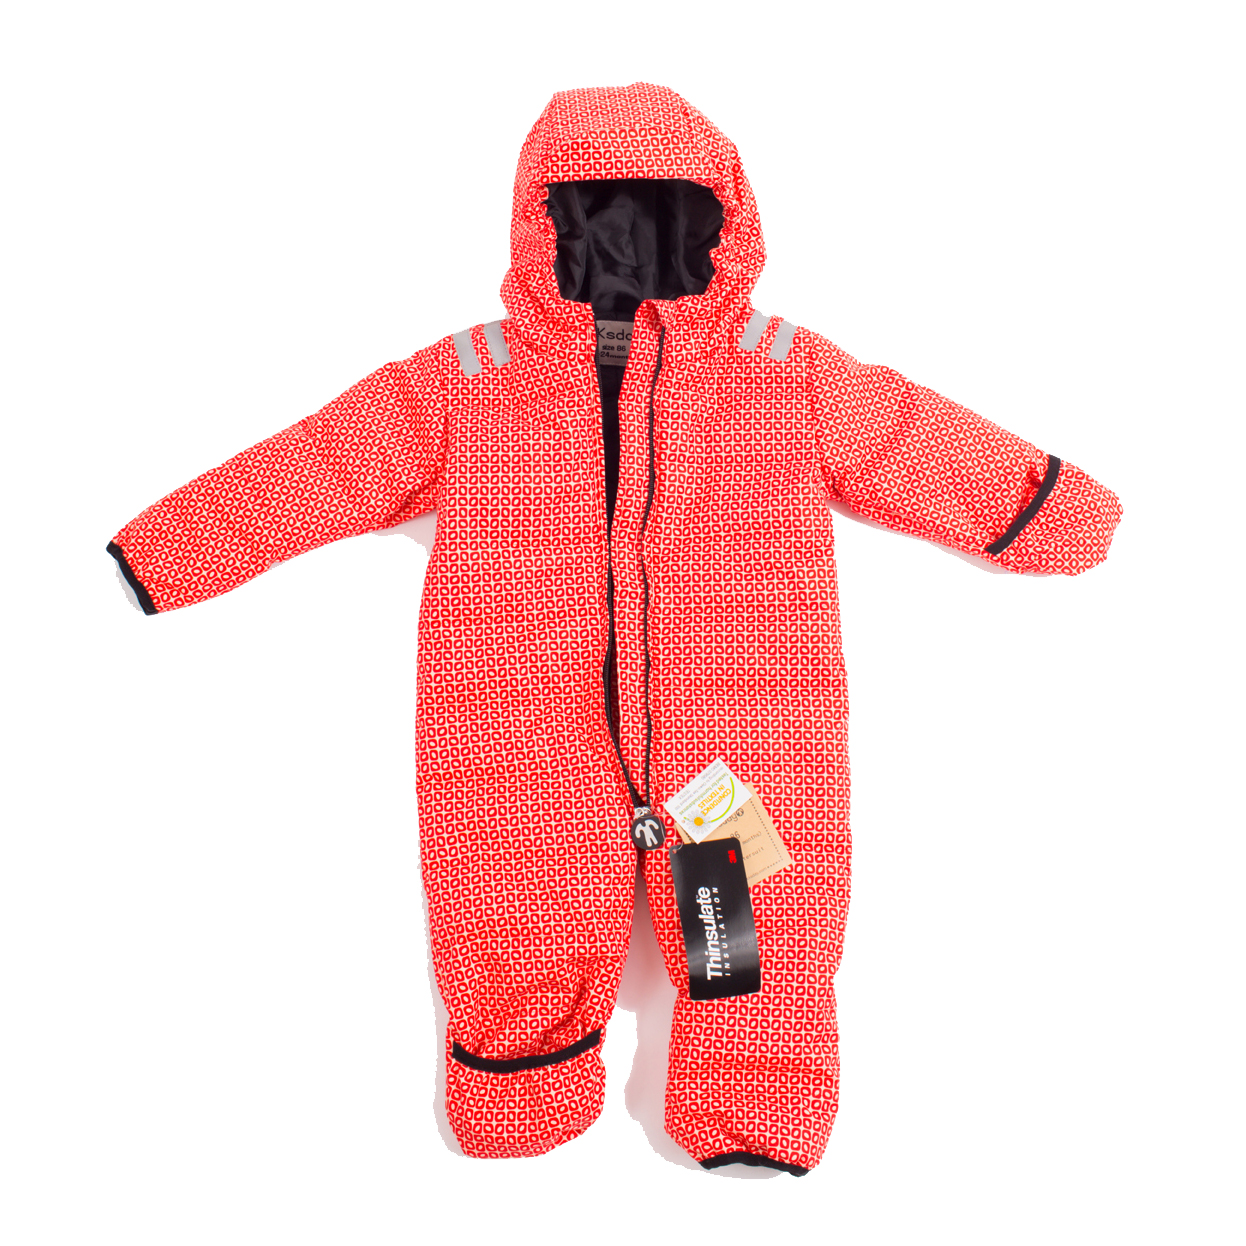 Ducksday-packshot-babysnowsuit-funky-red-detail1.jpg